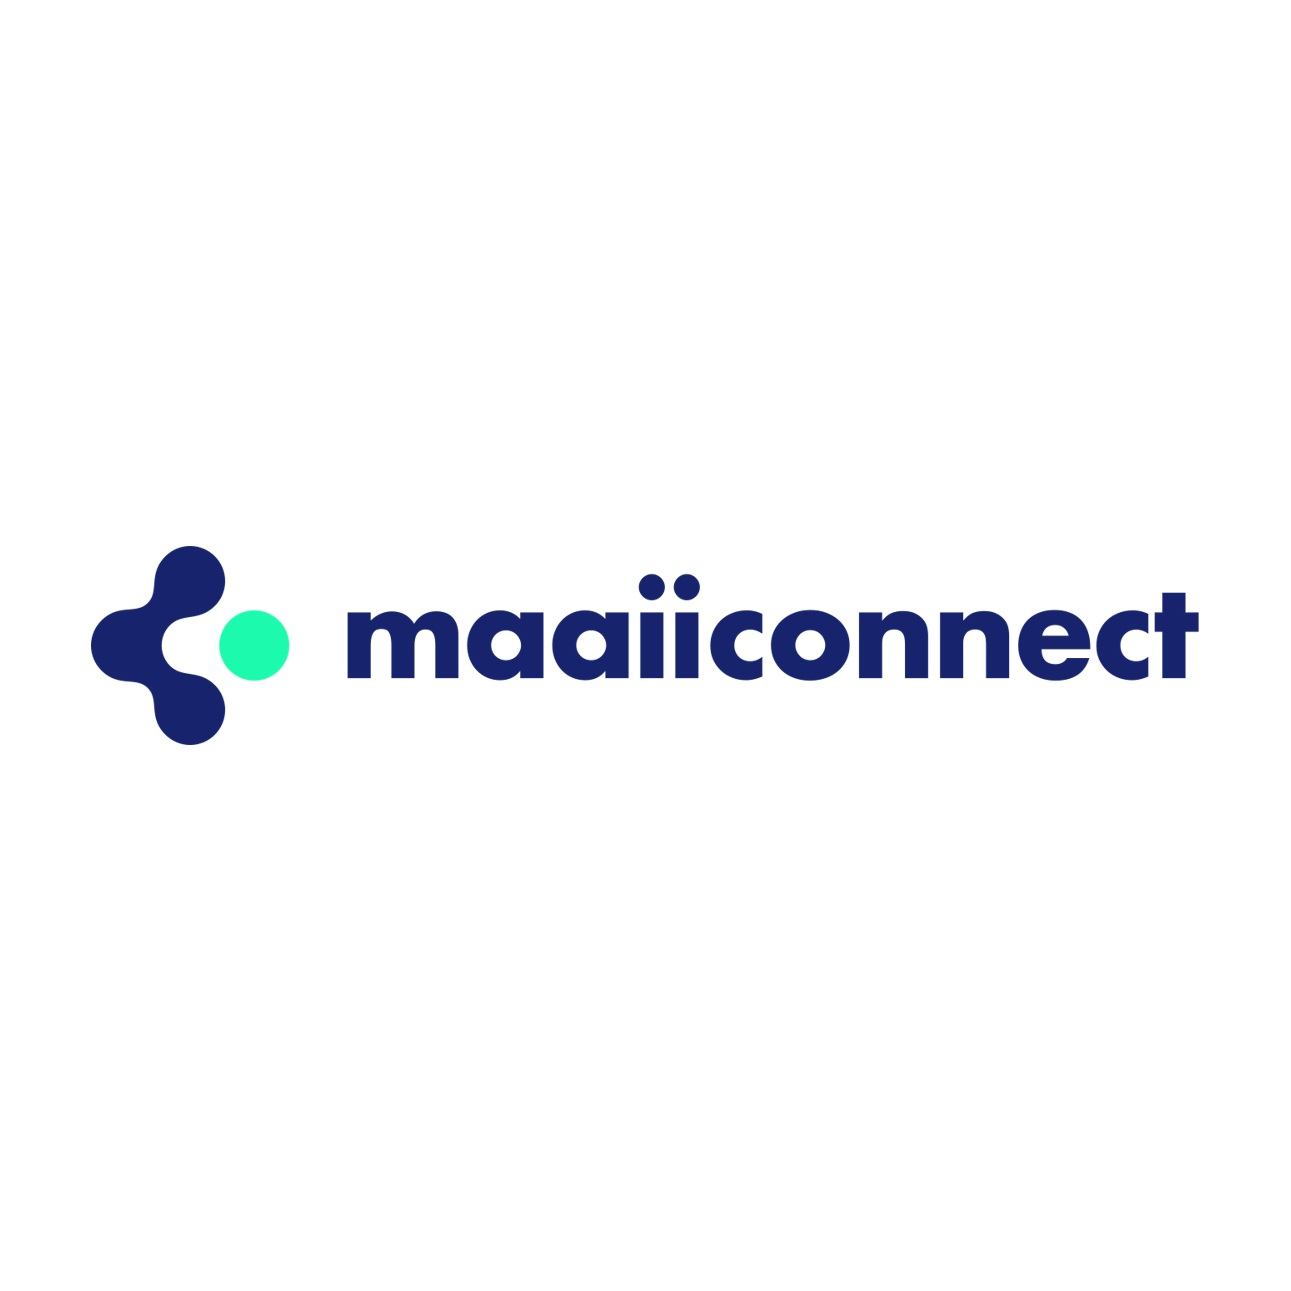 maaiiconnect – All-in-one customer engagement and team collaboration platform